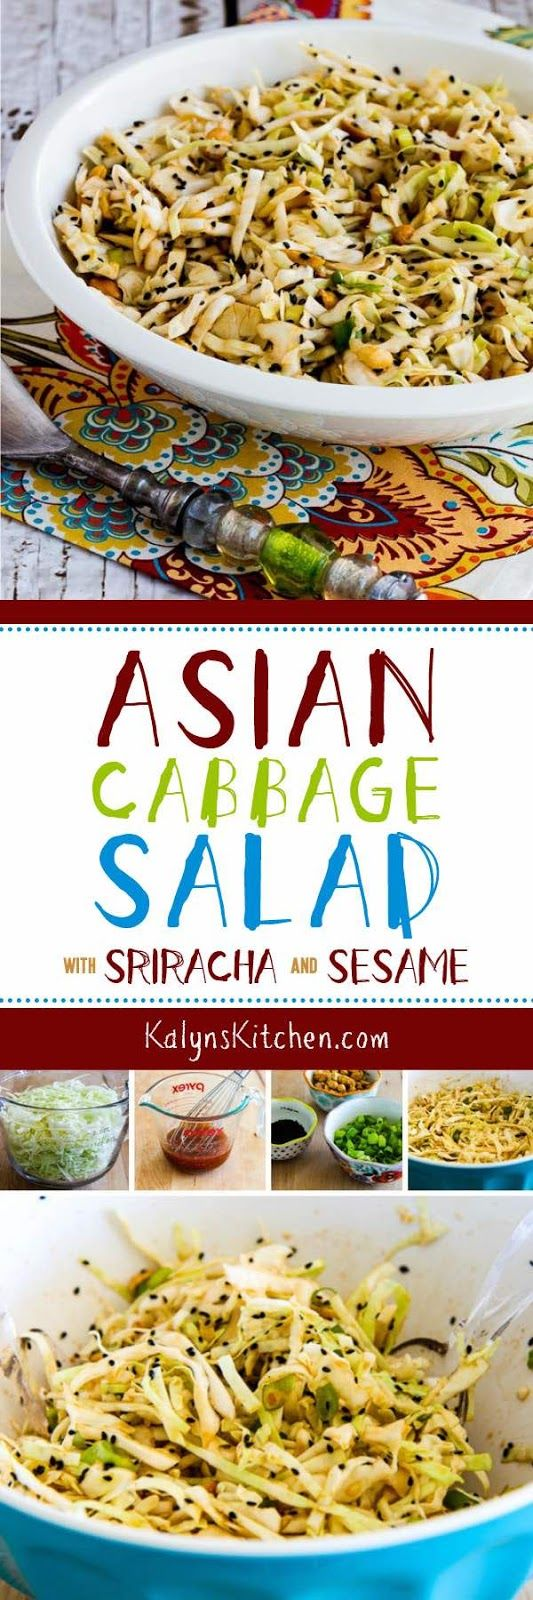 I love this spicy Asian Cabbage Salad  with Sriracha and Sesame and this tasty Meatless Monday Asian salad is low-carb, gluten-free, dairy-free, vegan, and South Beach Diet friendly, and if you skip the peanuts and use an approved hot sauce it can be Paleo and Whole 30. [found on KalynsKitchen.com]